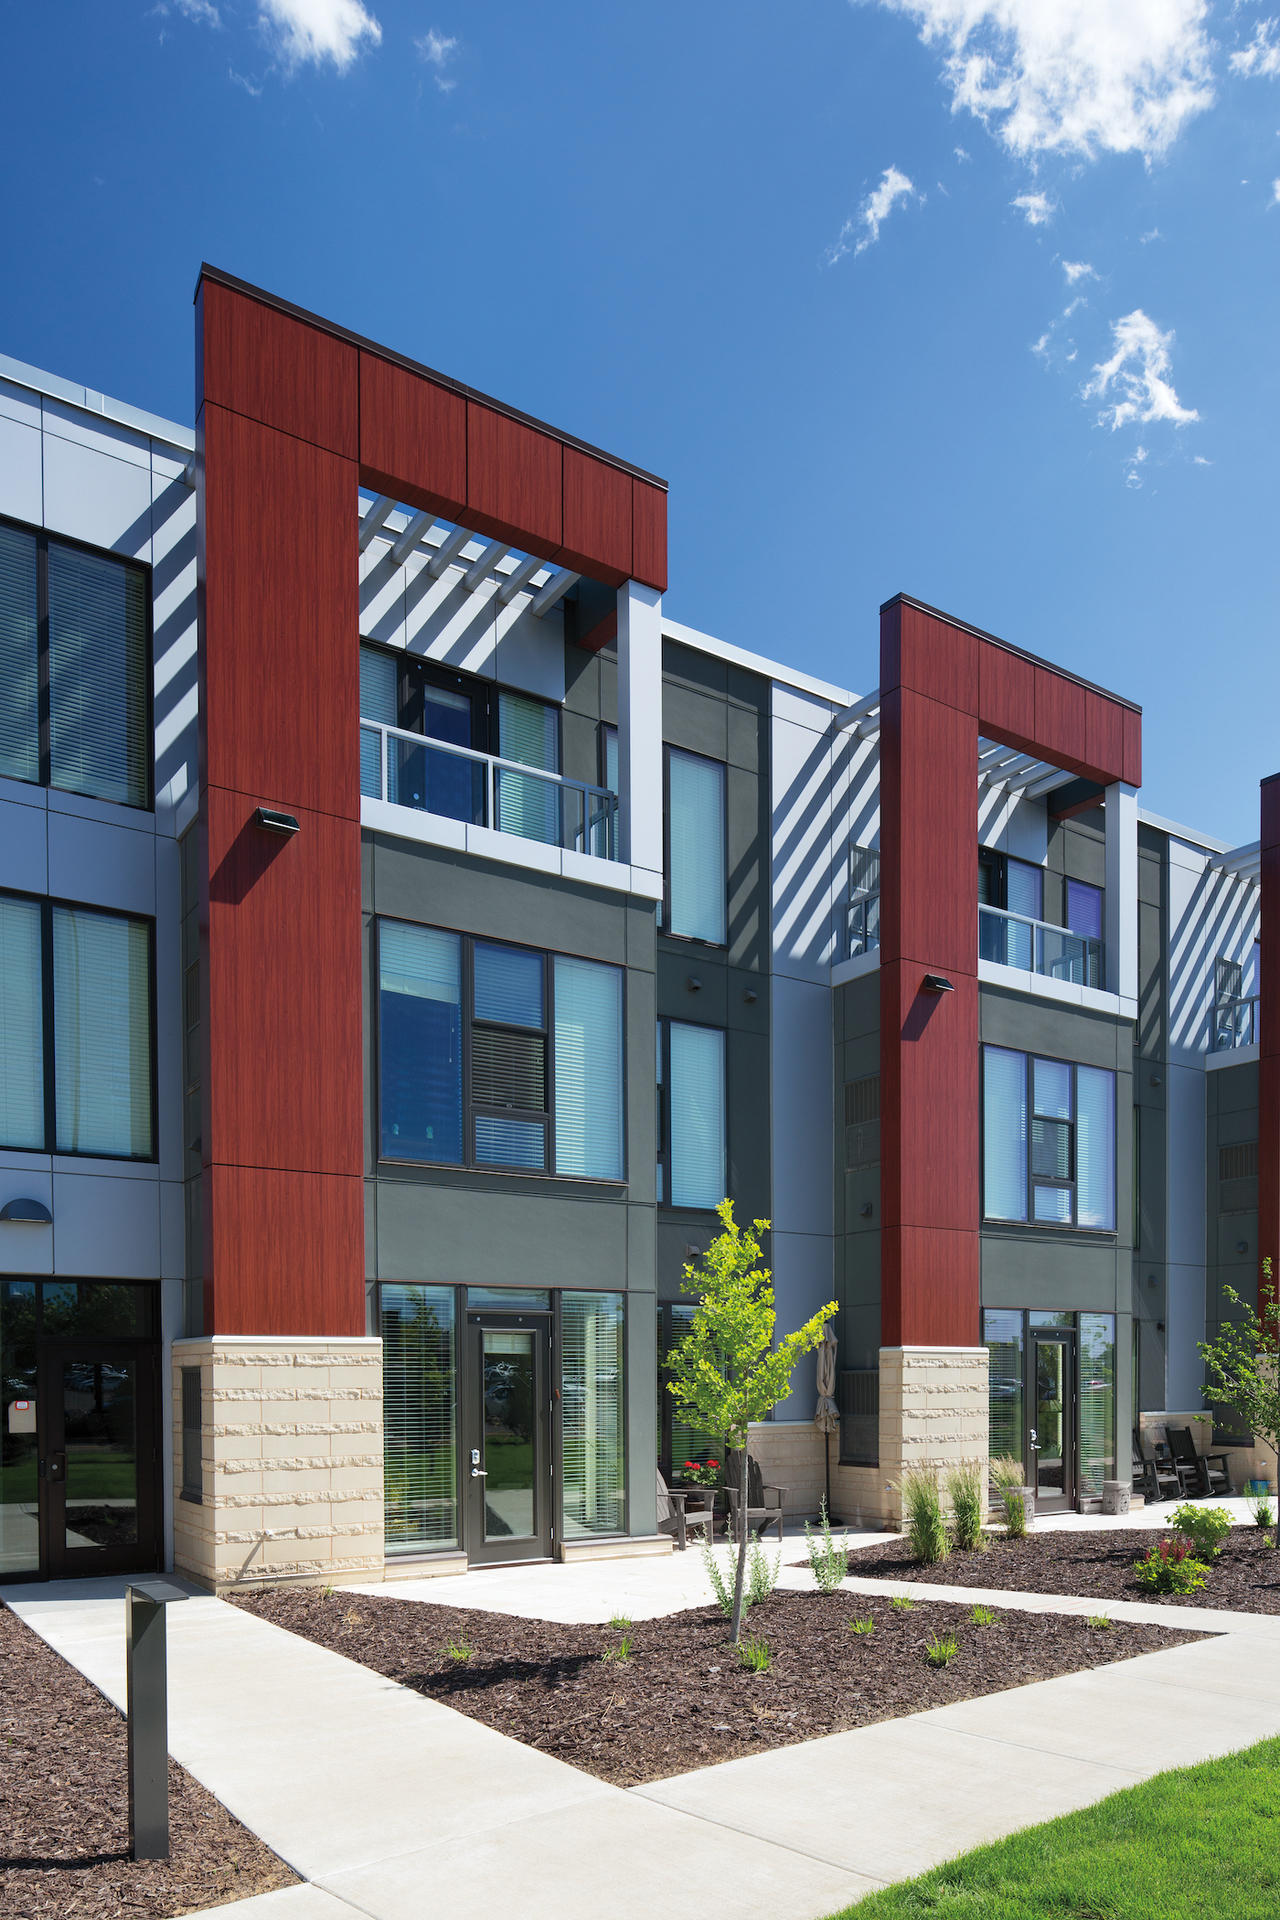 Pella® Impervia® windows and doors create a clean apartment building look at One Southdale Place in Edina, MN.